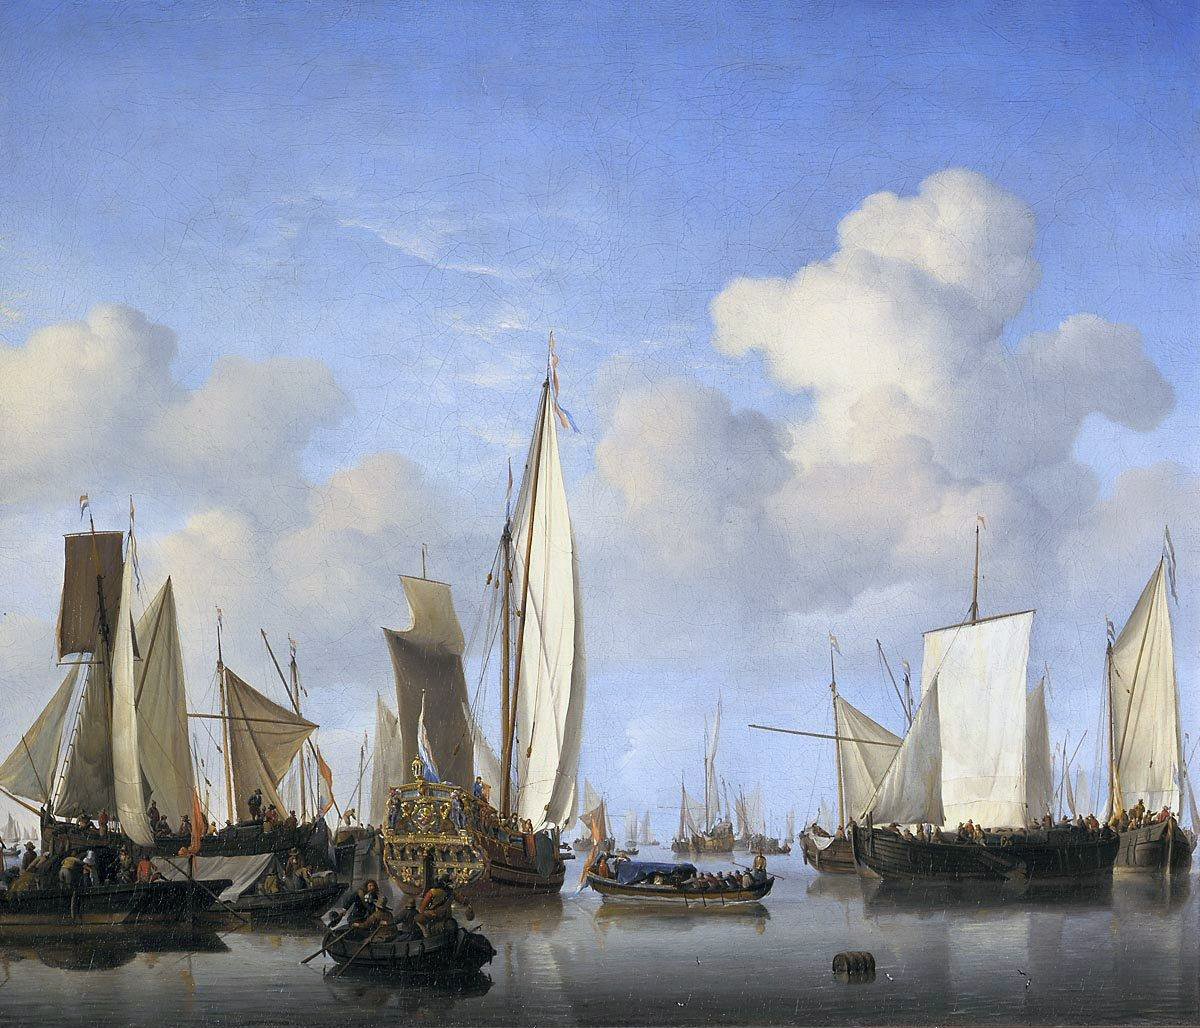 schepen_op_de_rede_-_ships_on_the_roadst